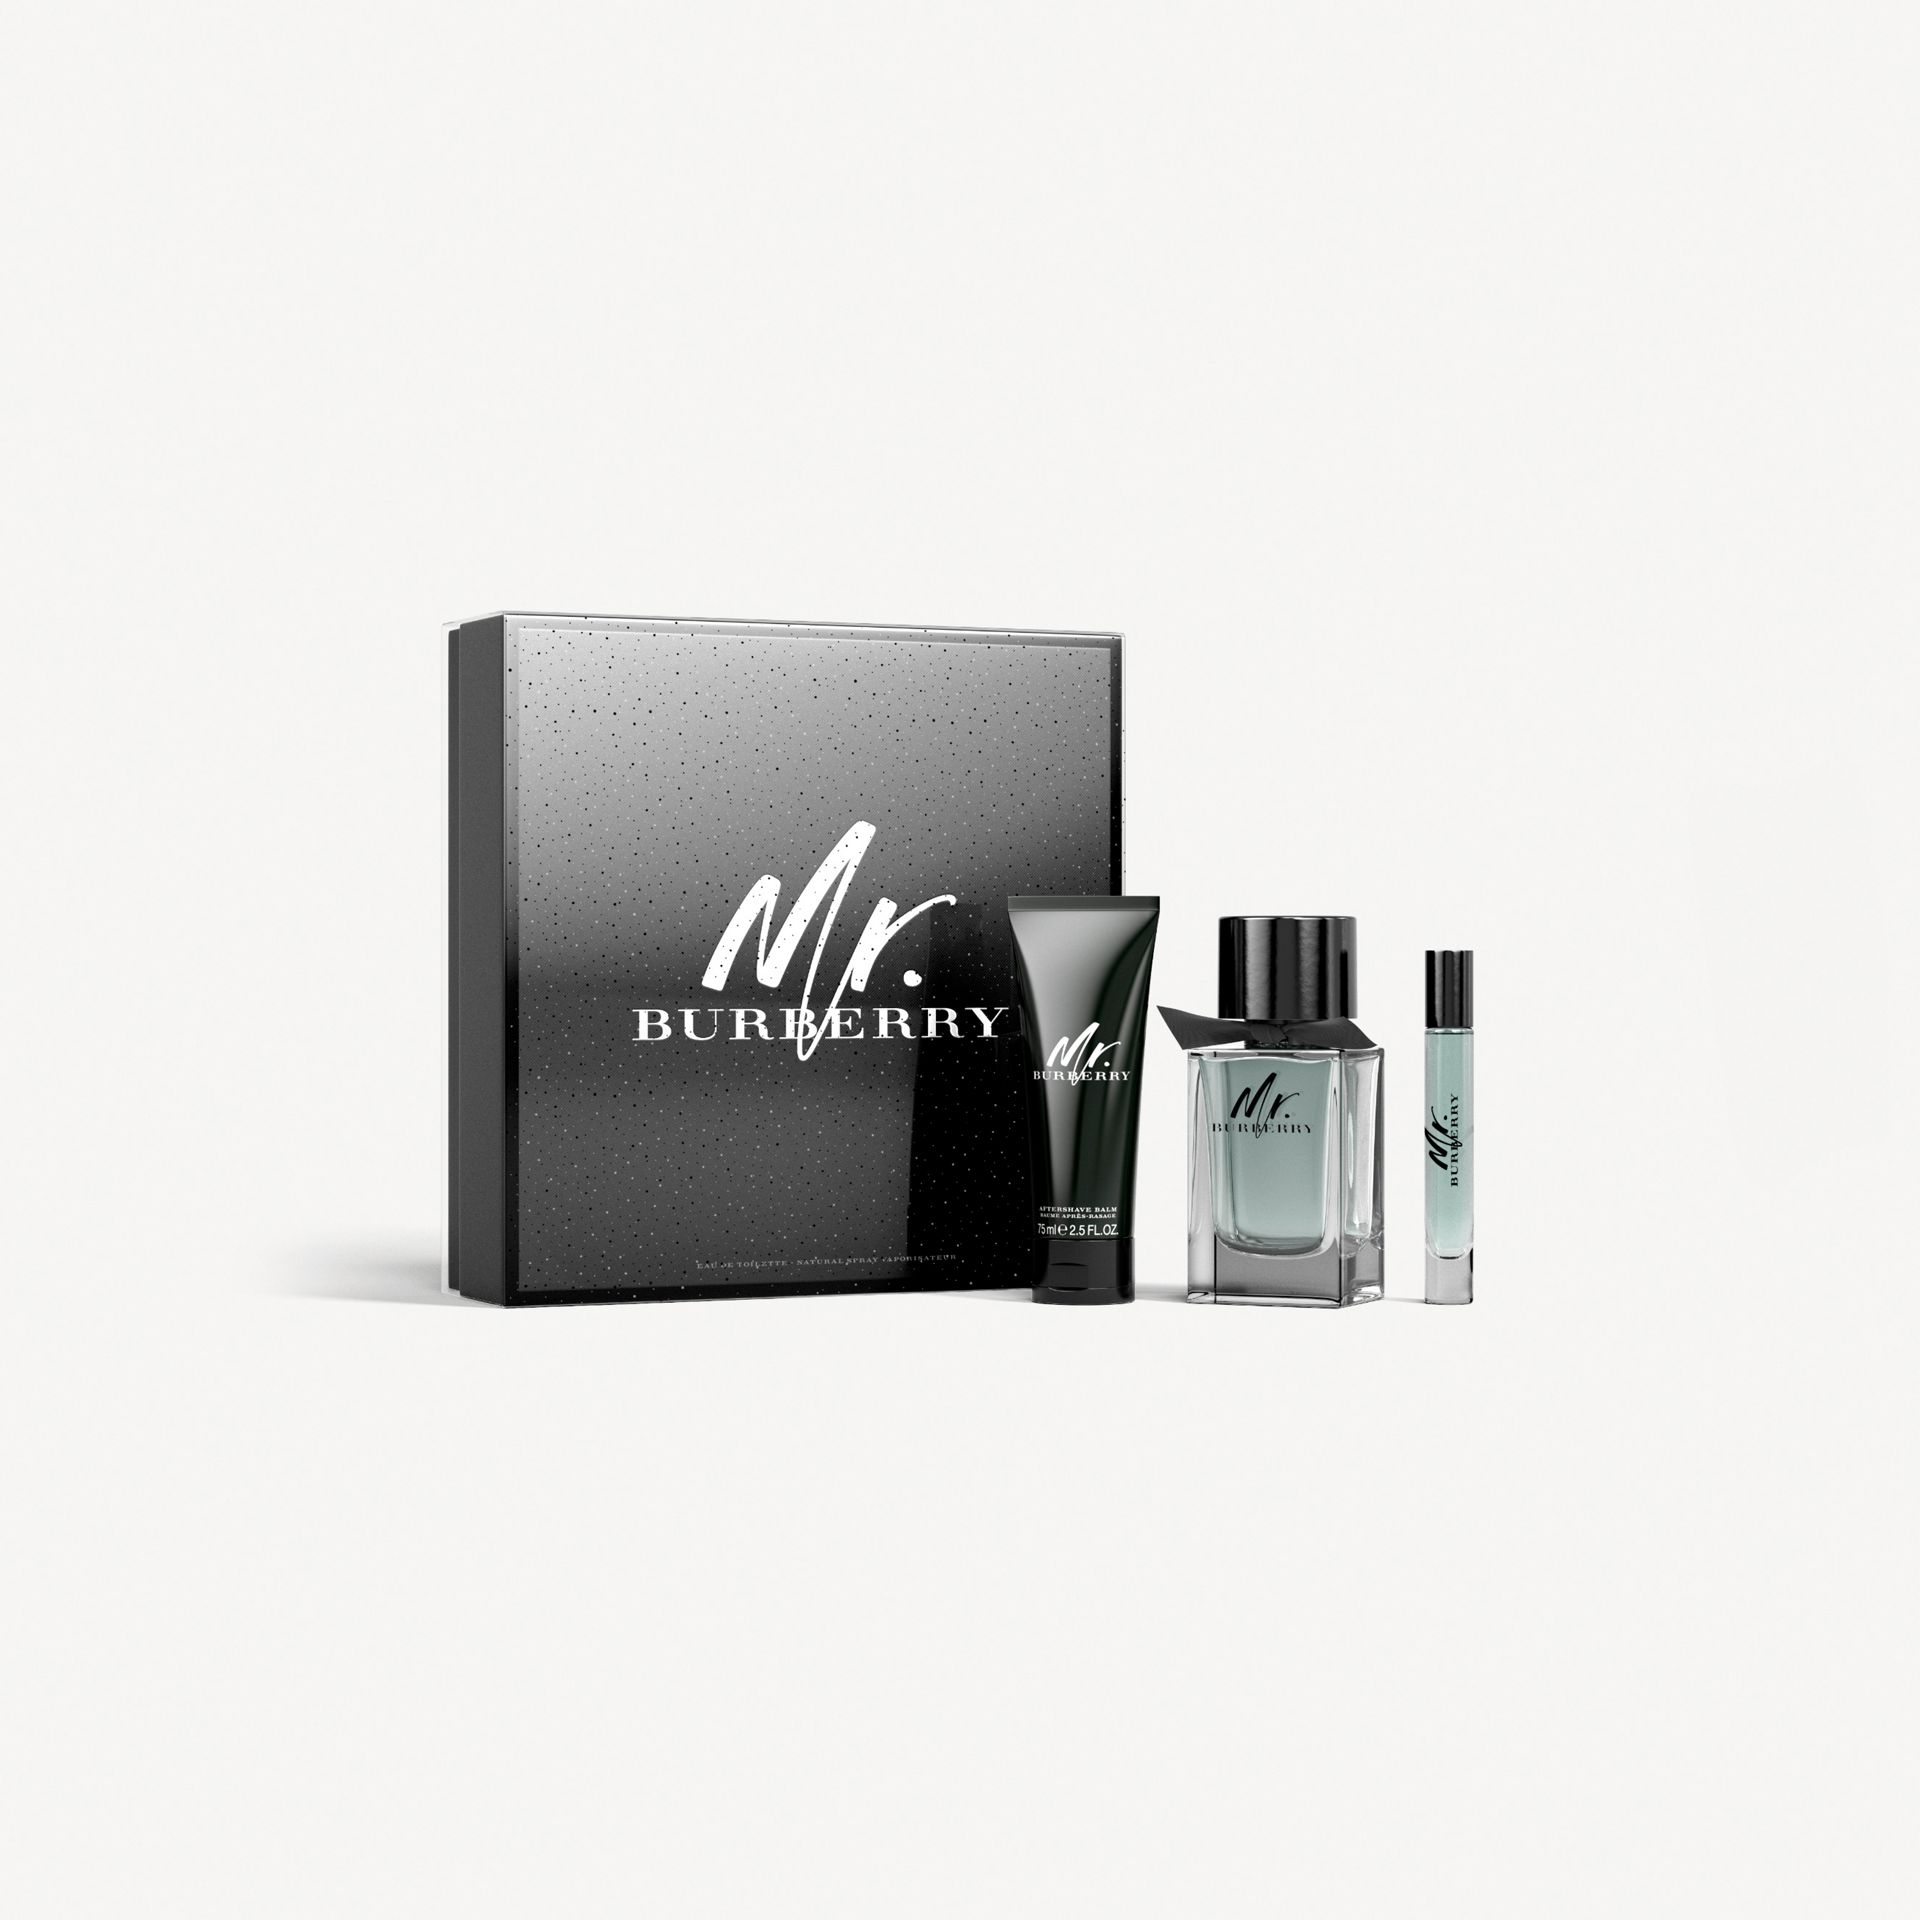 Mr. Burberry Eau de Toilette Luxury Set in No Colour - Men | Burberry - gallery image 0